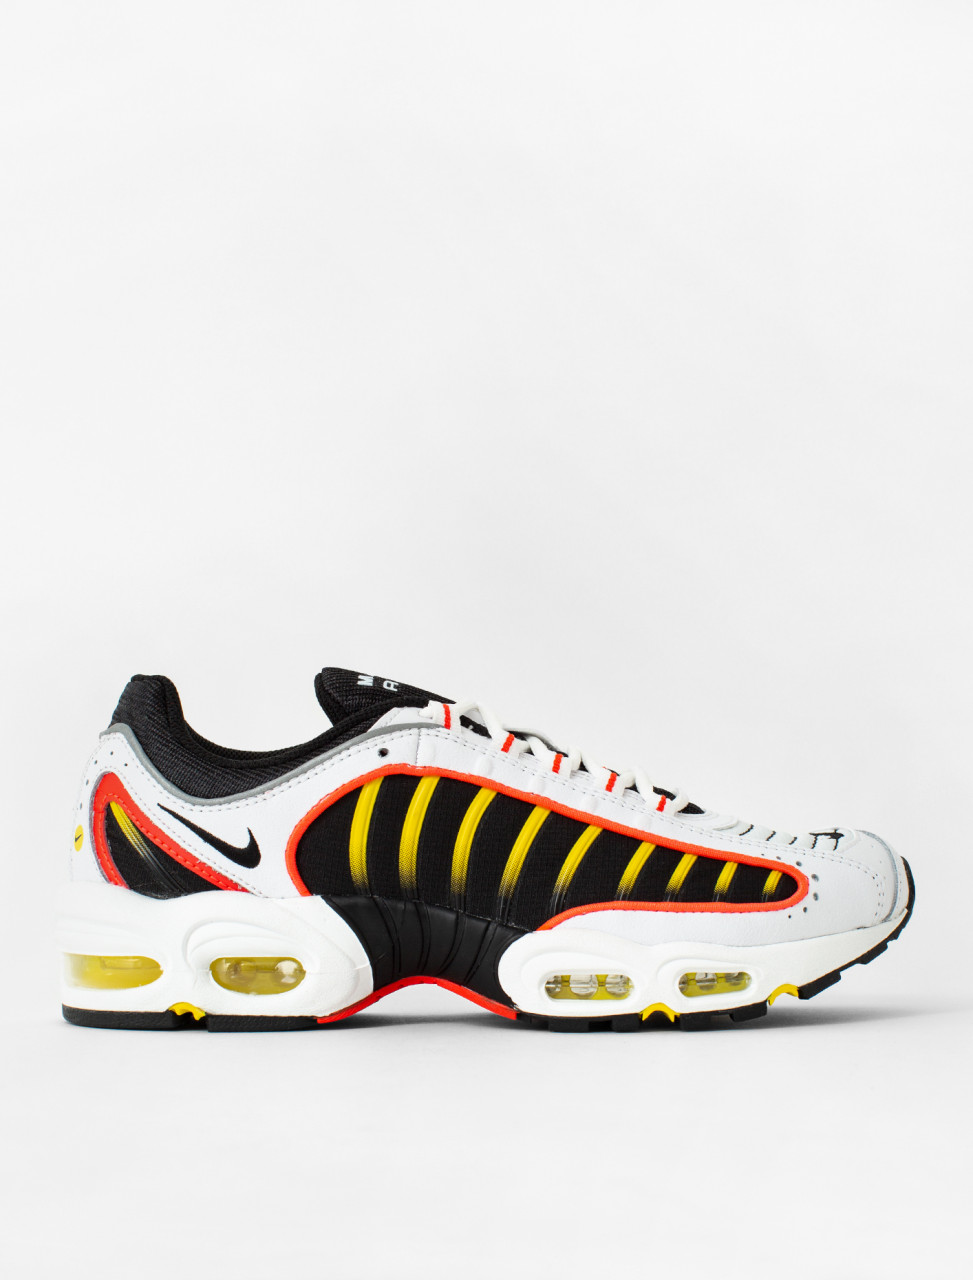 Air Max Tailwind IV Sneaker